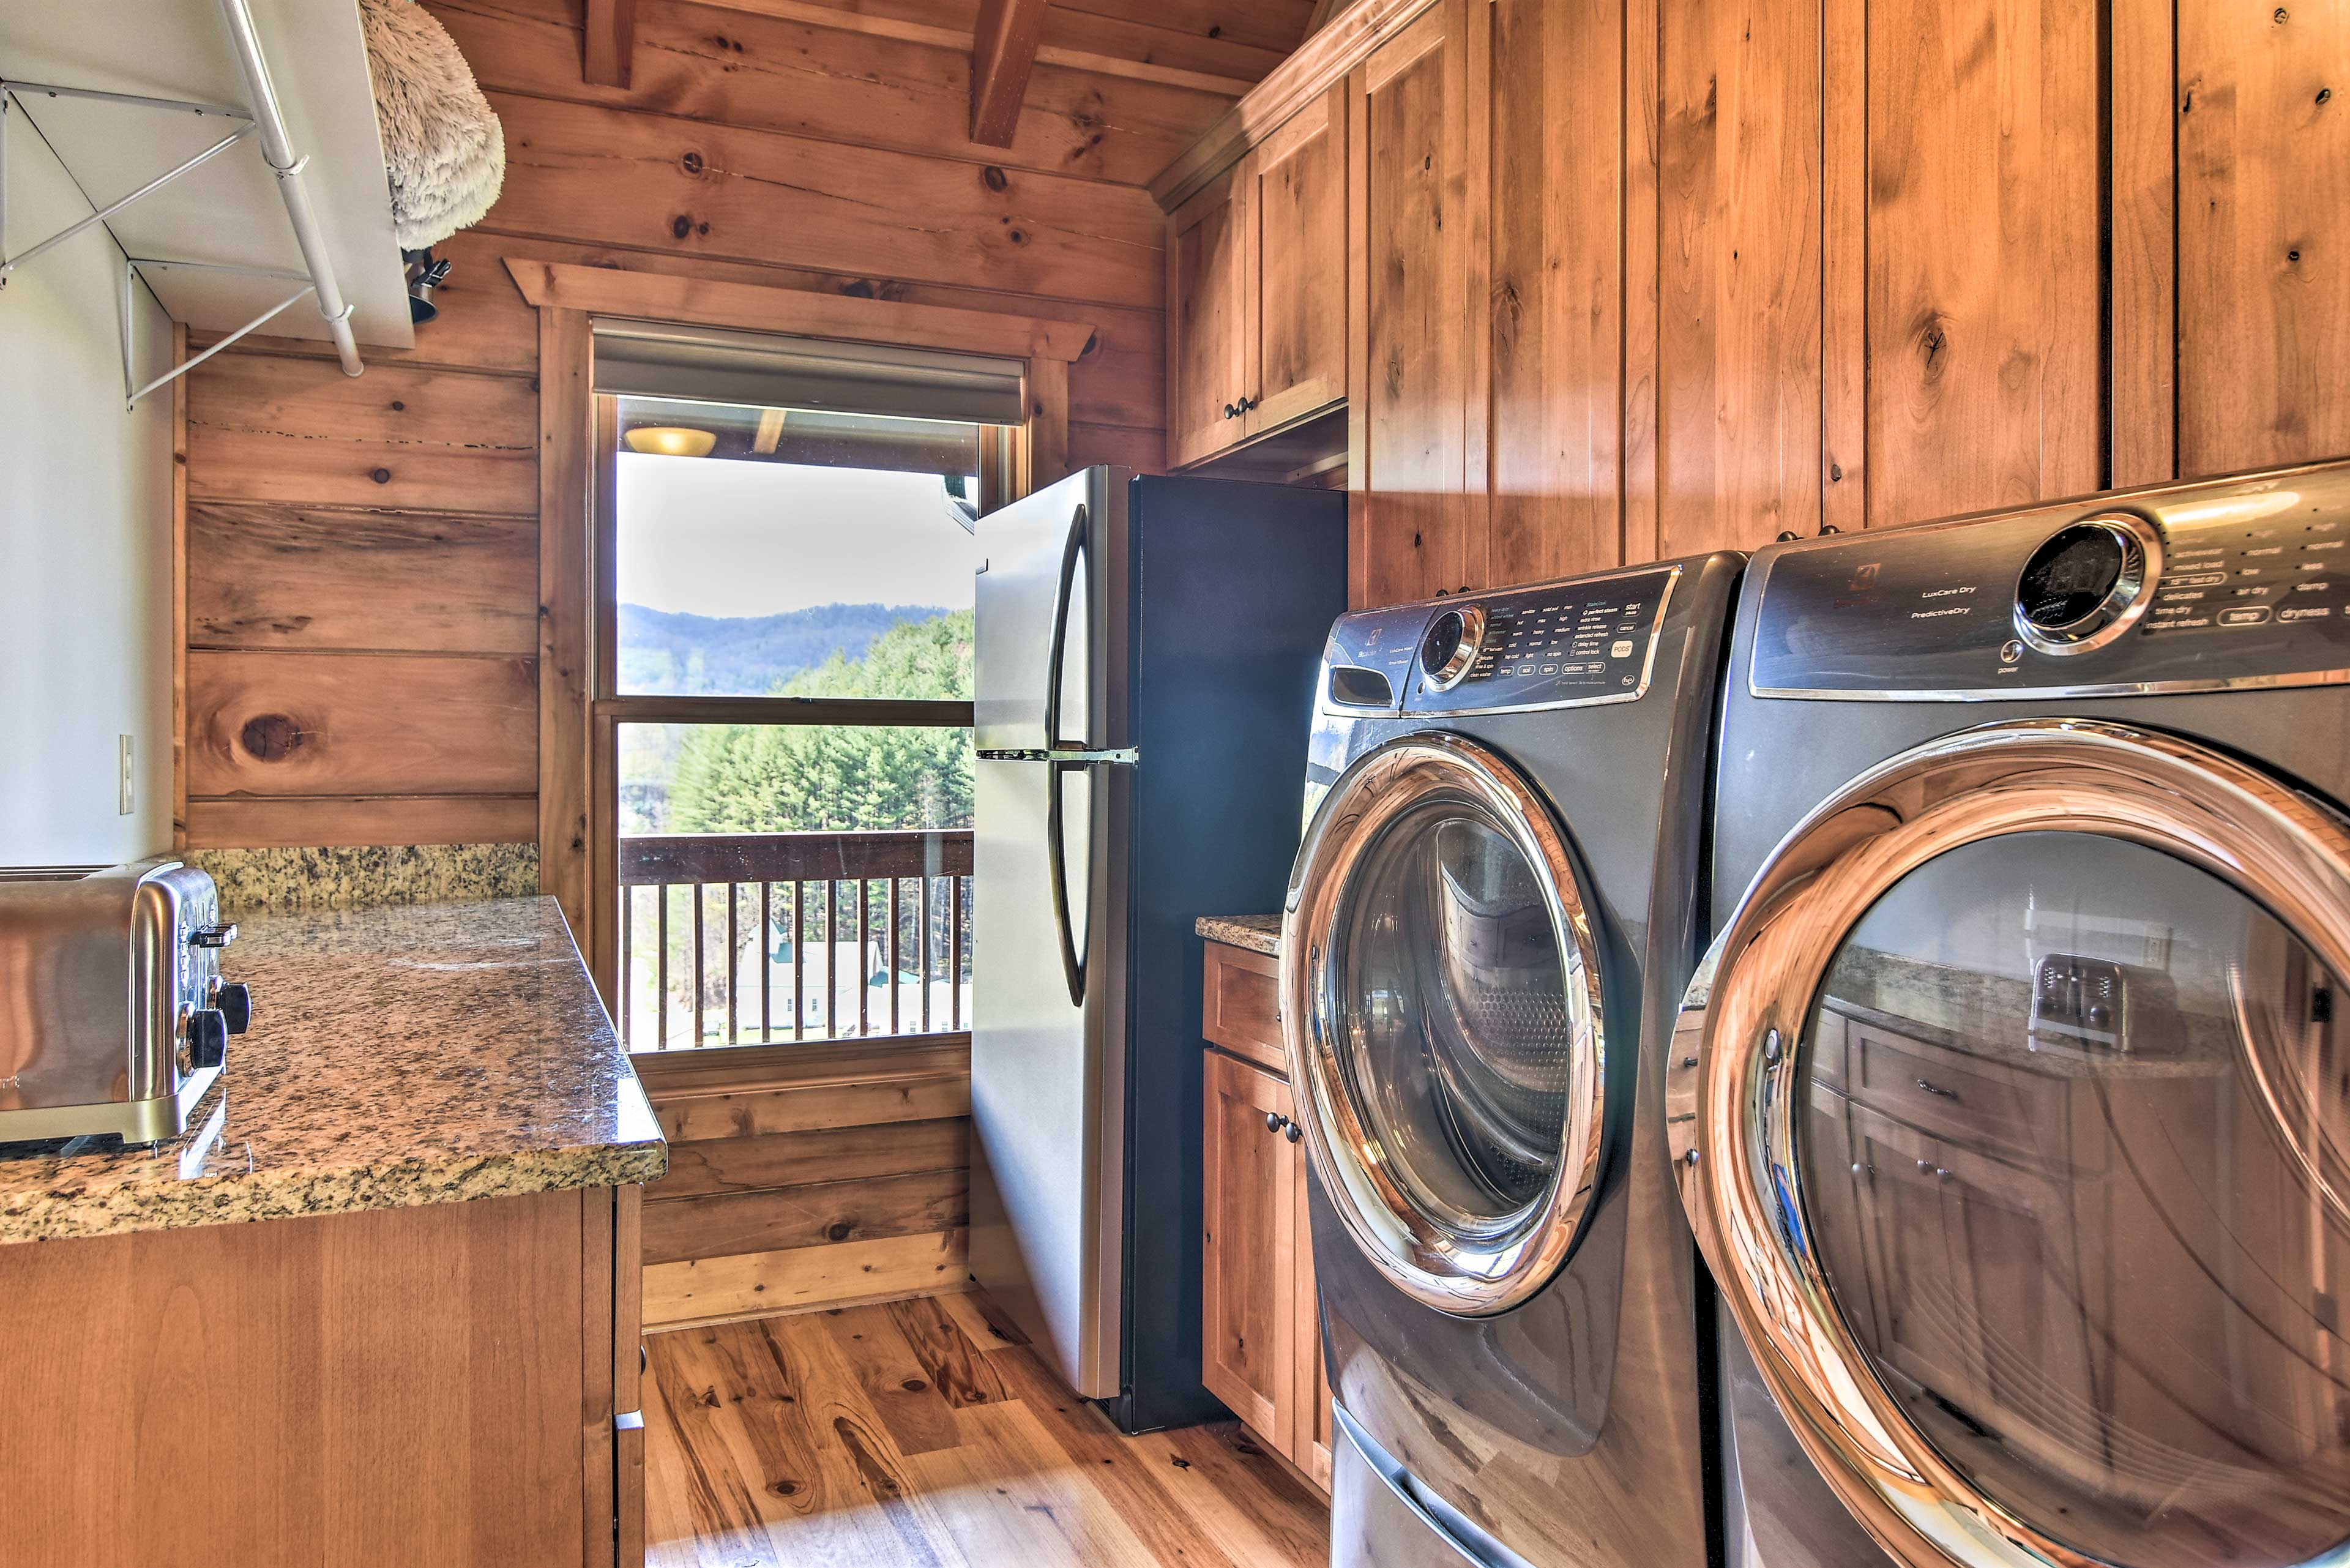 This group-friendly home has in-unit laundry.